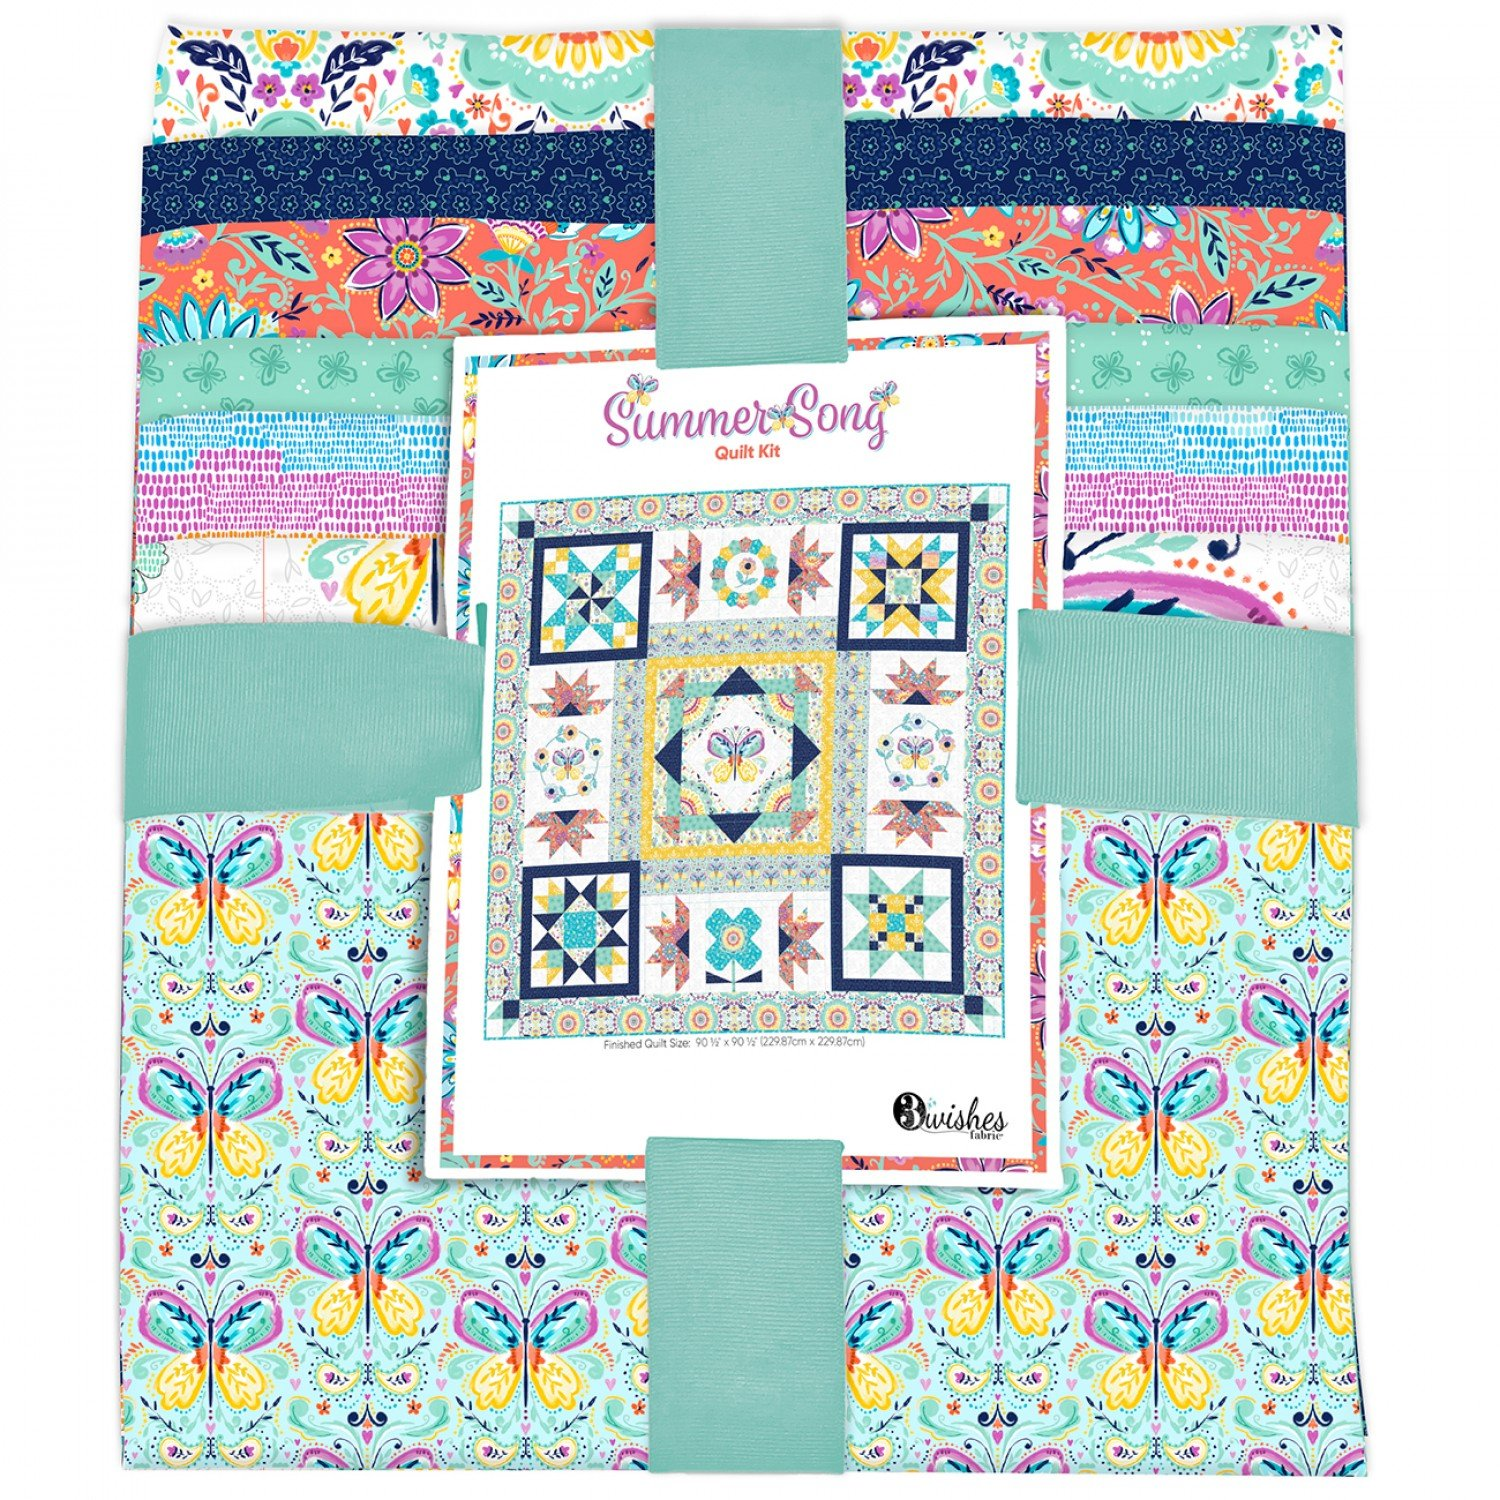 Summer Song quilt kit by 3 Wishes Fabrics 3WS21-QLTKIT